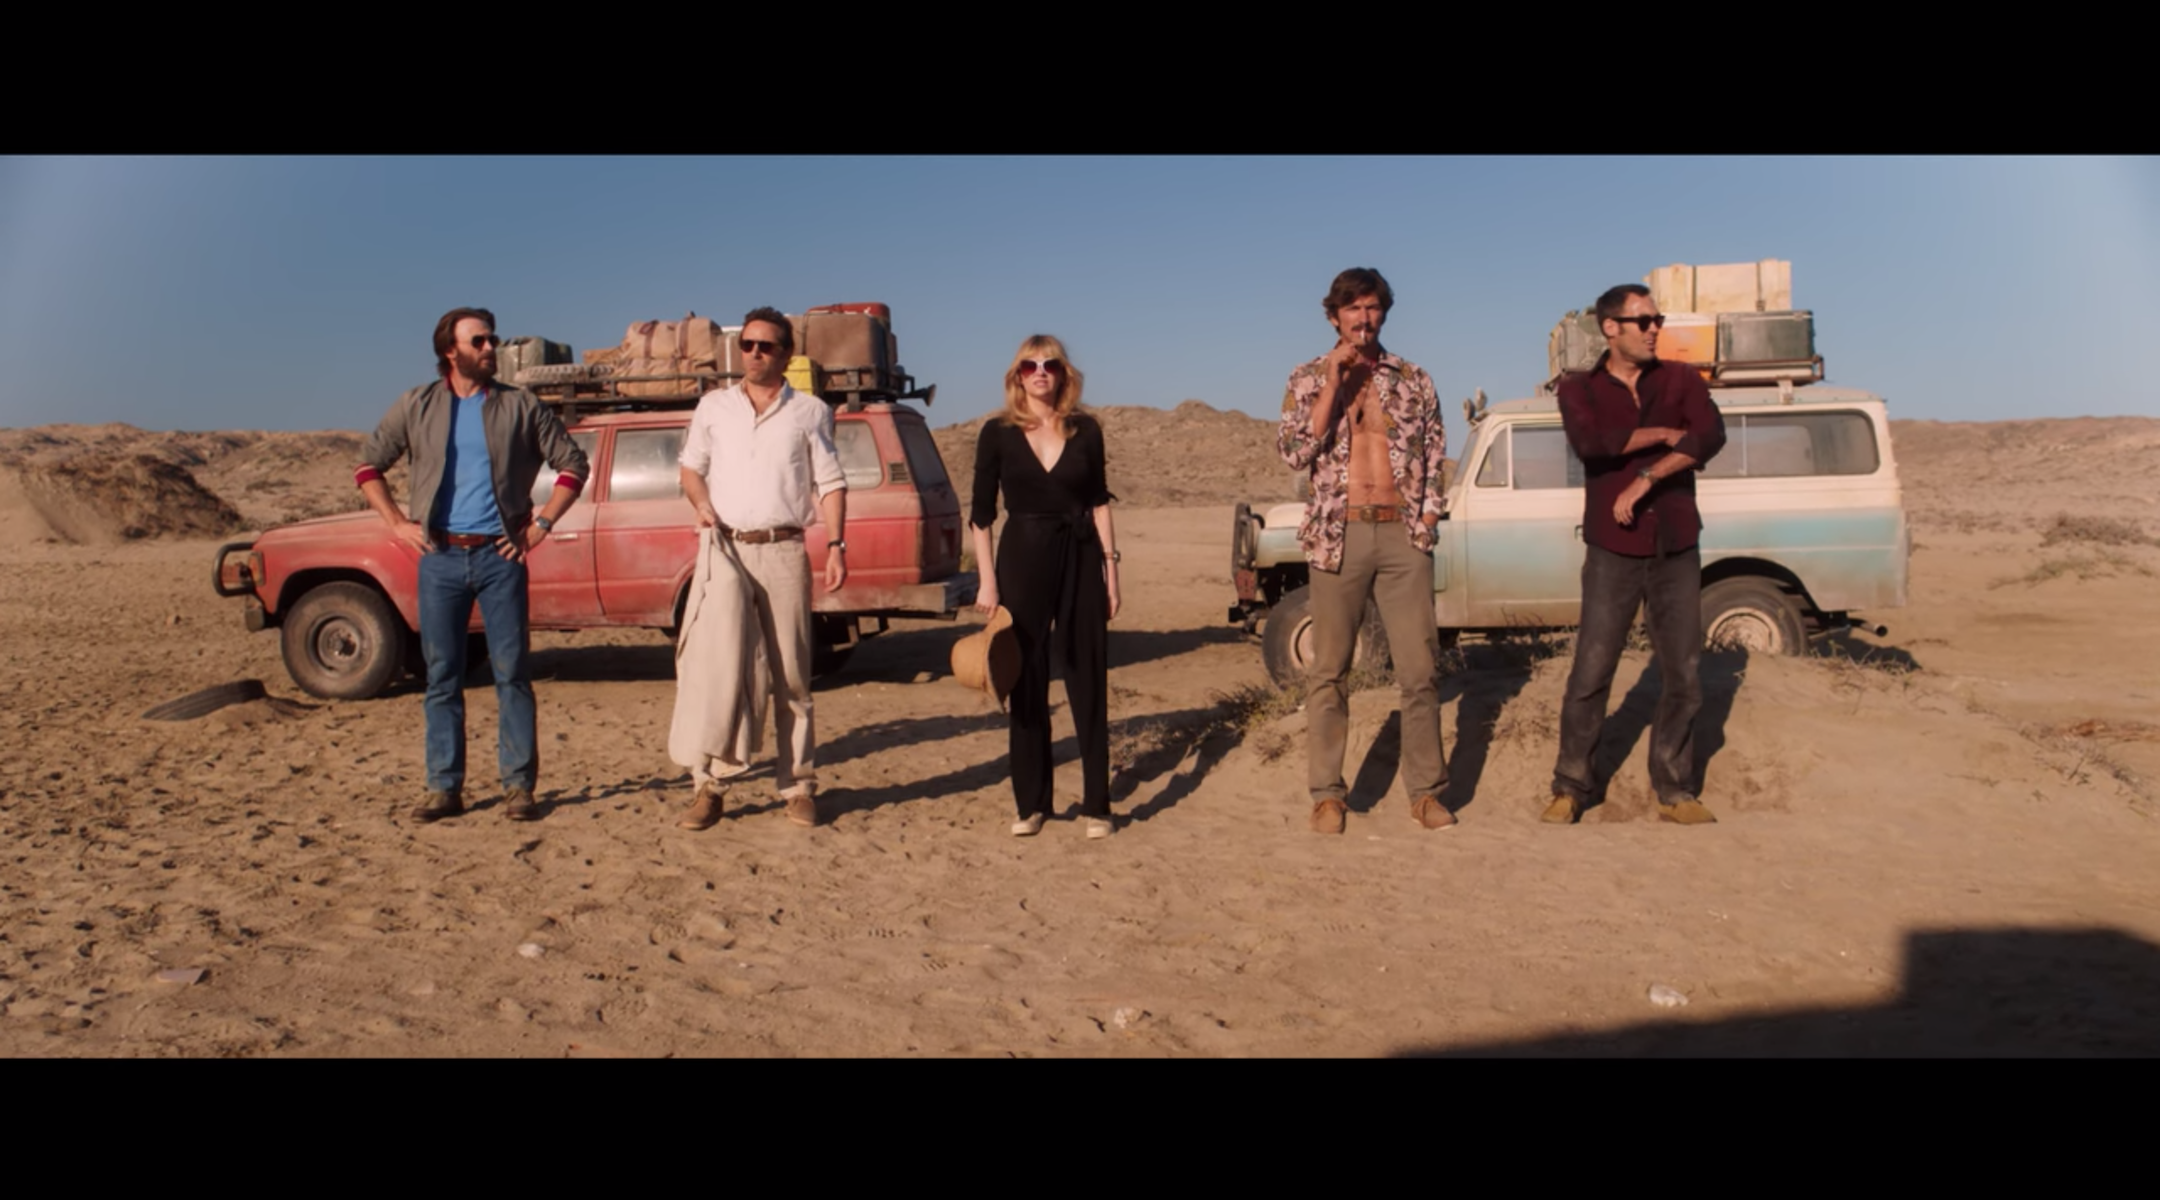 """Chris Evans (left) and his co-stars in """"The Red Sea Diving Resort,"""" a new Netflix film about an Israeli rescue of Ethiopian Jews. (Screenshot from Netflix)"""